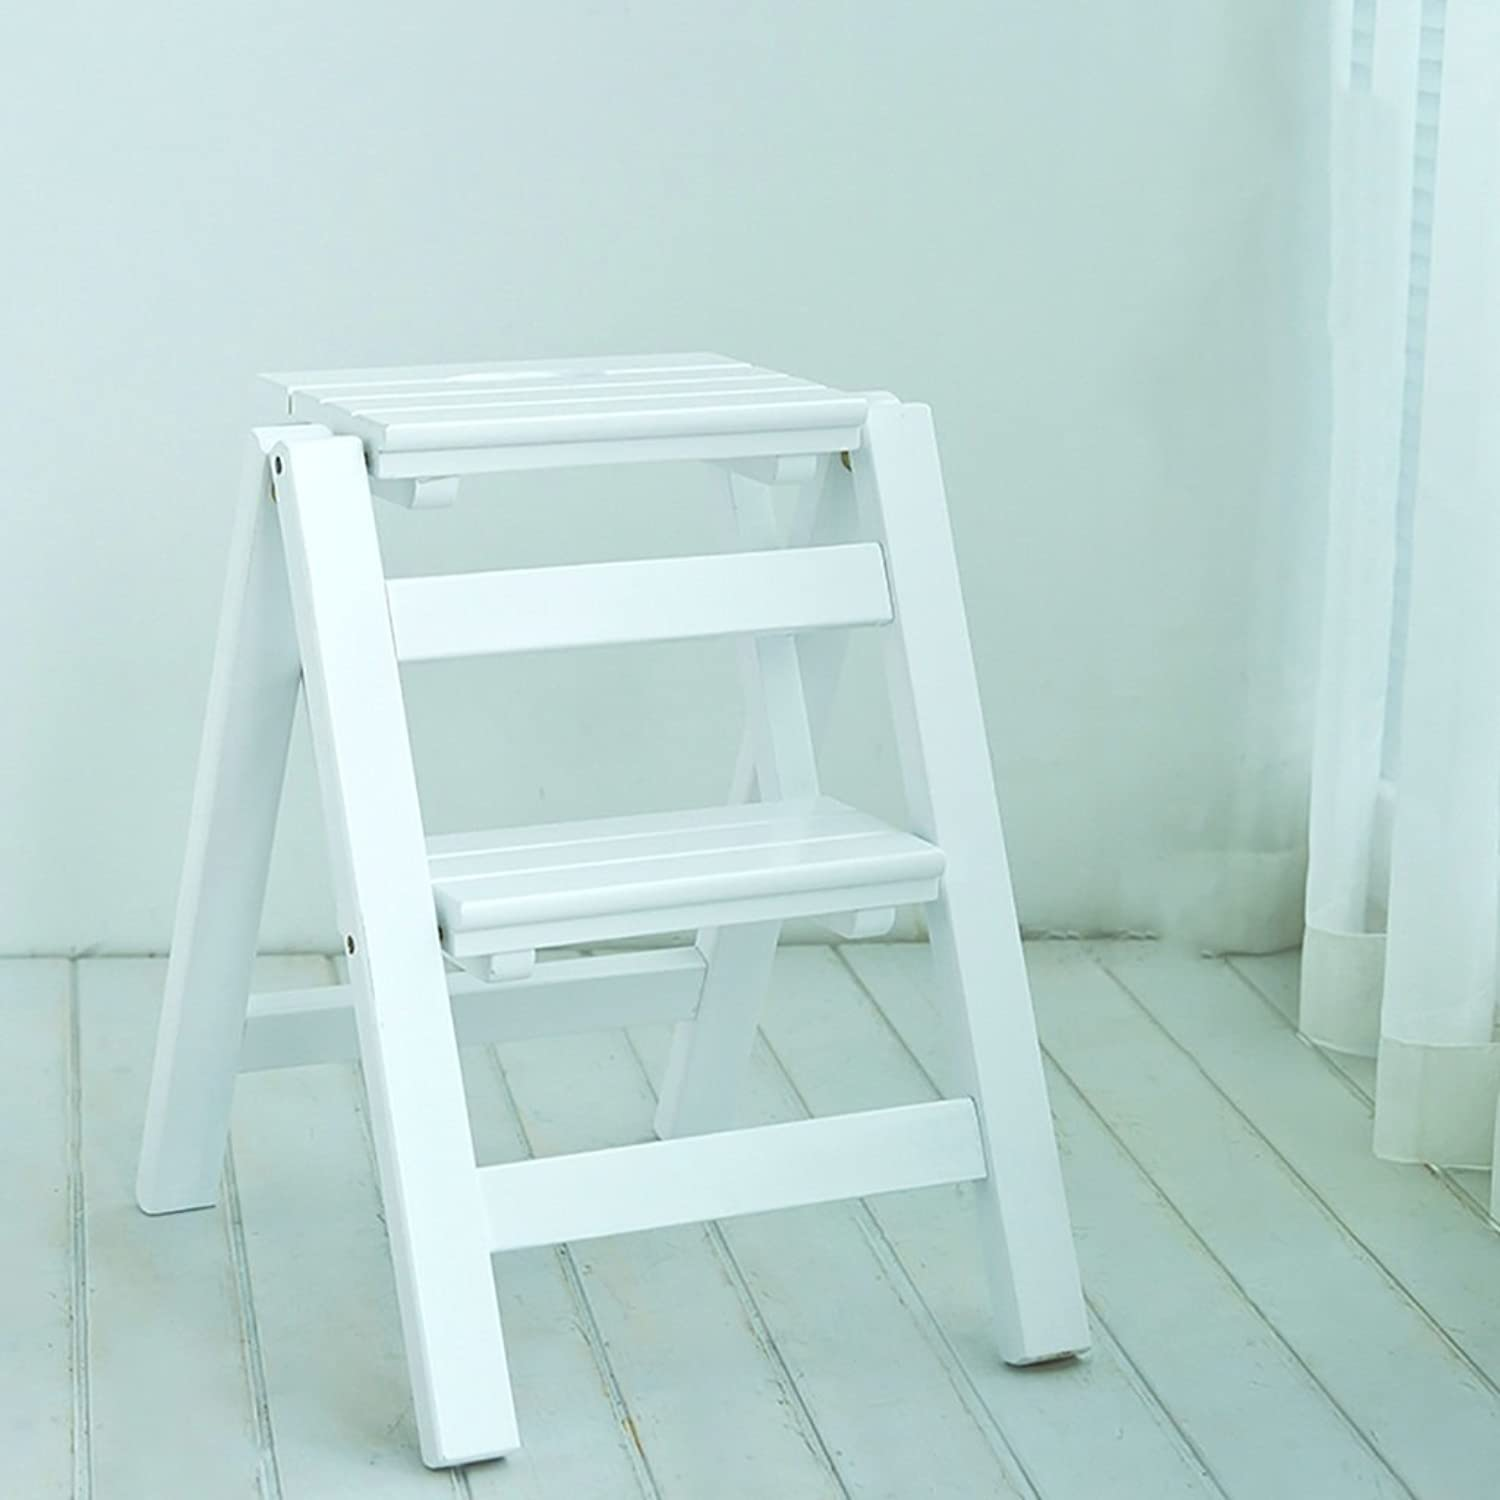 WFFXLL Step Stool Solid Wood Fold Stair Chair Household Ladder Two Steps Multifunction Indoor Ascend The Small Ladder Step Stool (color   C)